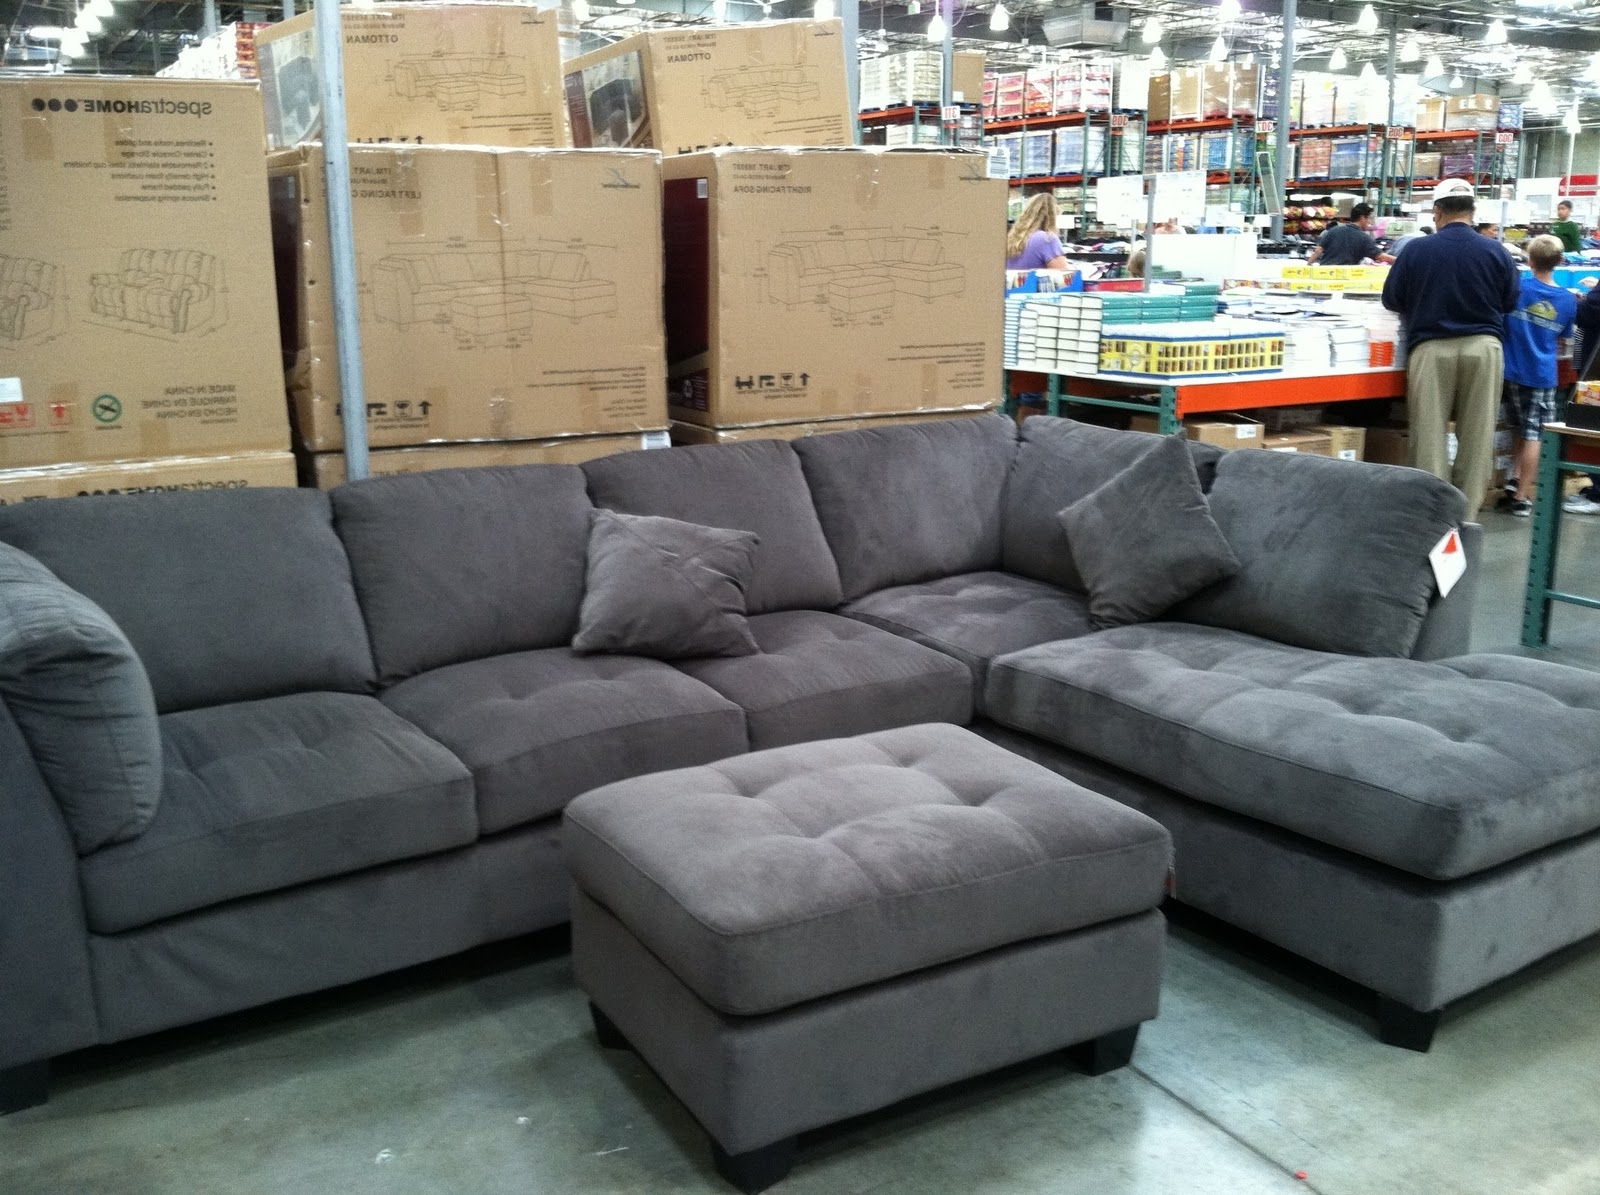 Preferred Epic Gray Sectional Sofa Costco 21 For Sofa Table Ideas With Gray Regarding Sectional Sofas At Costco (View 8 of 15)